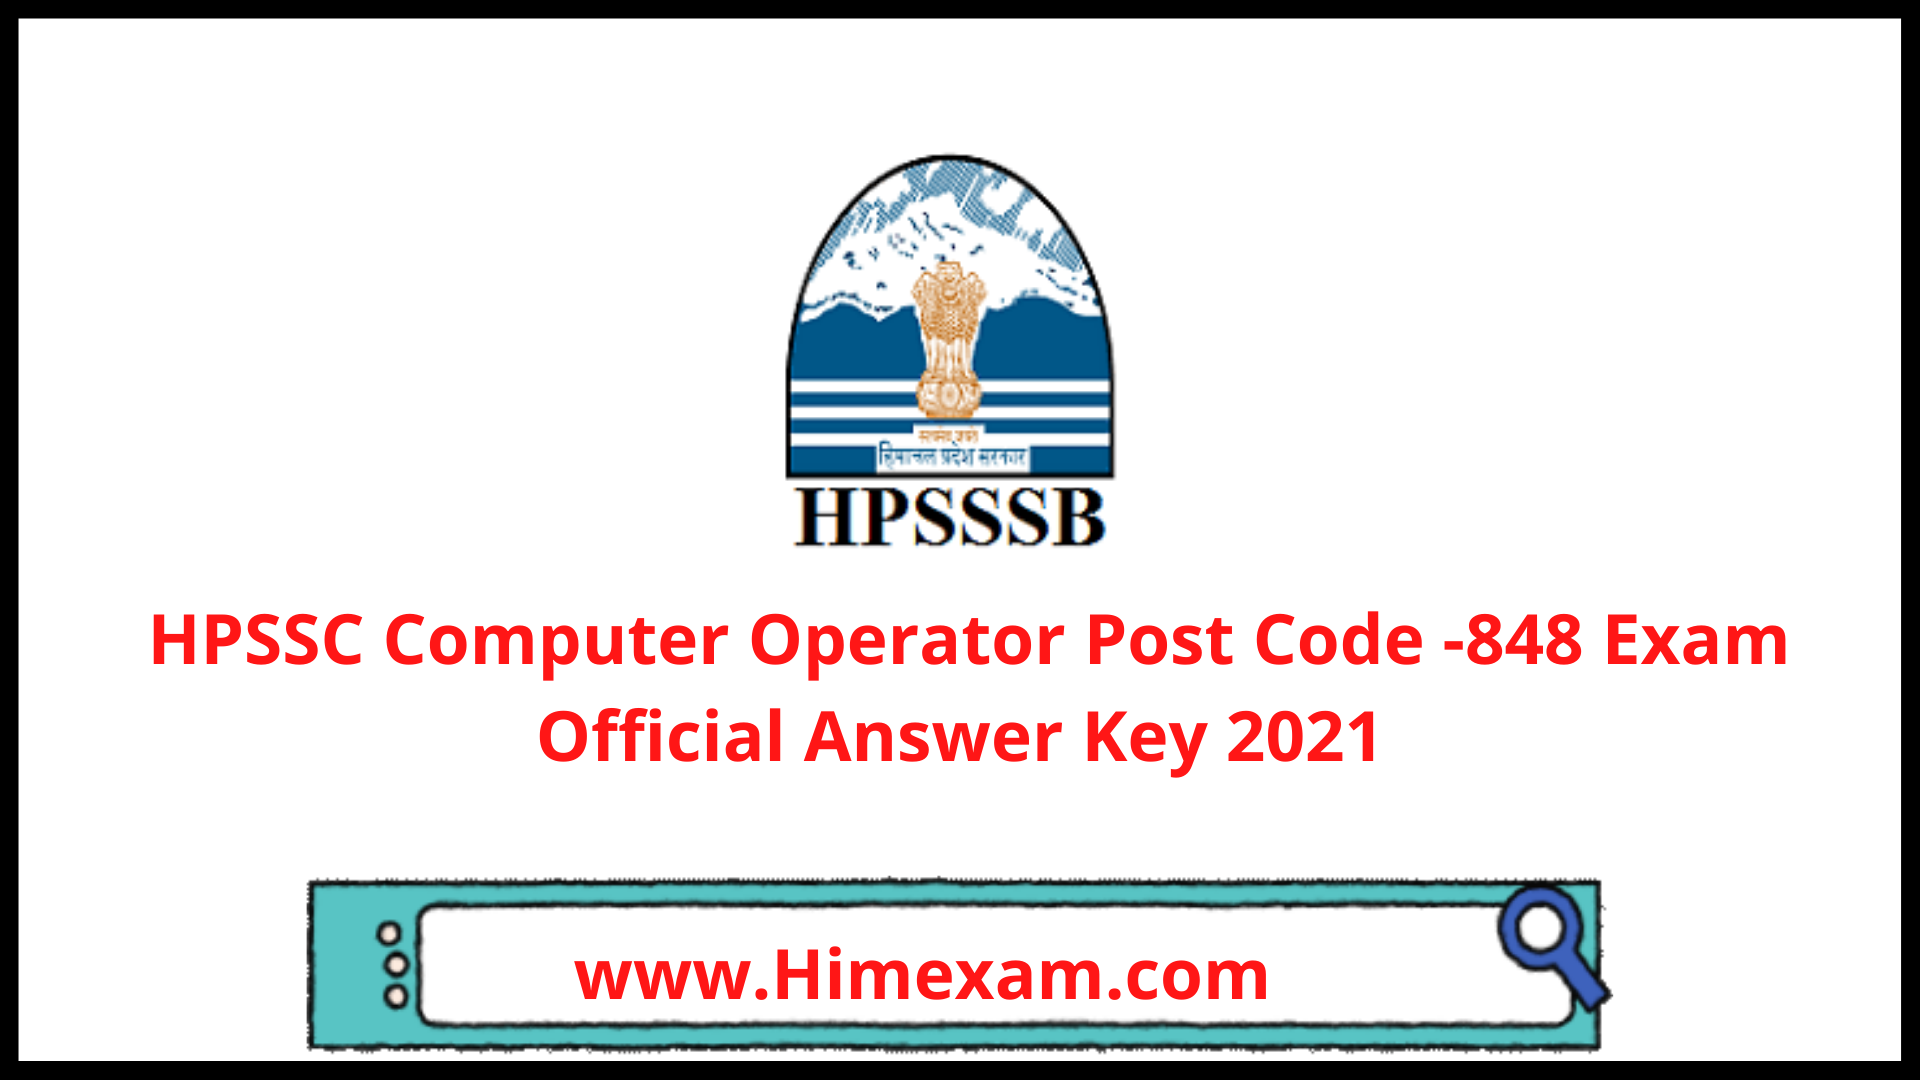 HPSSC Computer Operator Post Code -848 Exam Official Answer Key 2021